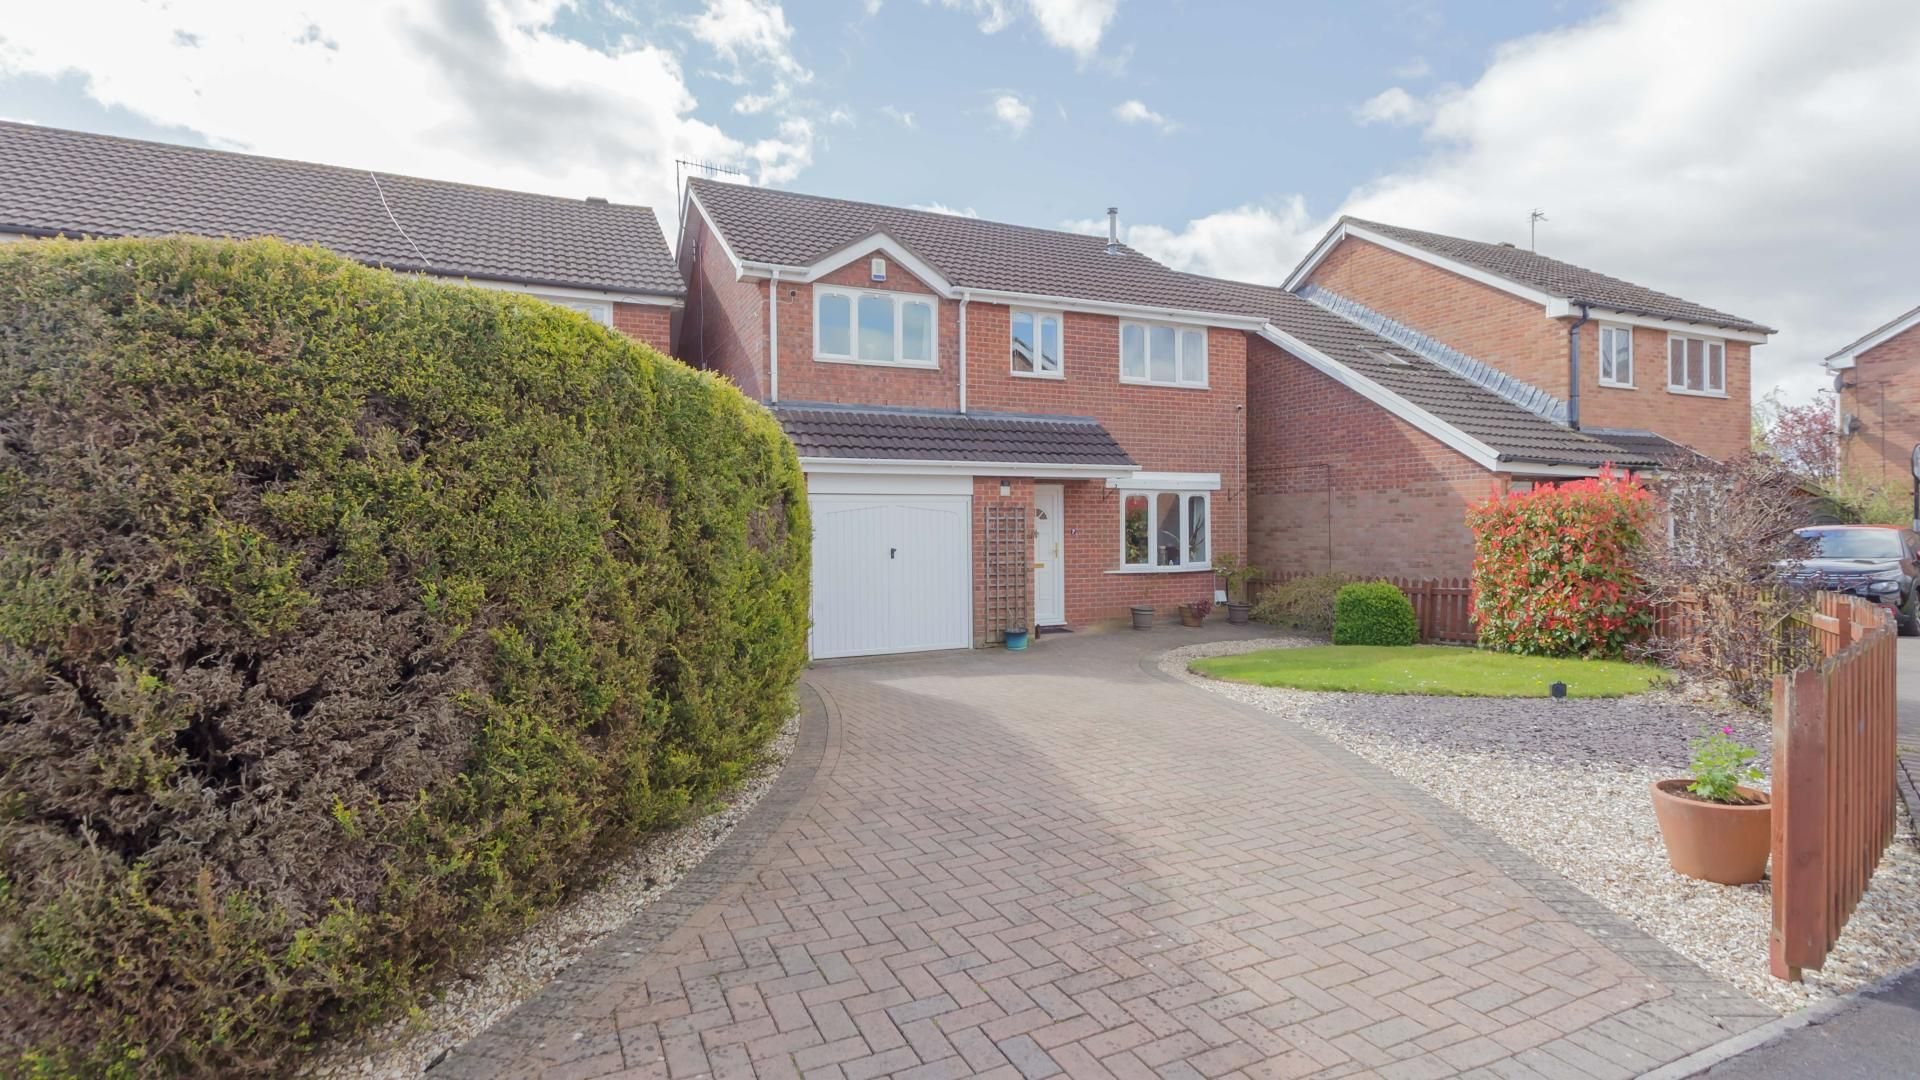 4 bed house for sale in Blackthorn Grove, NP18